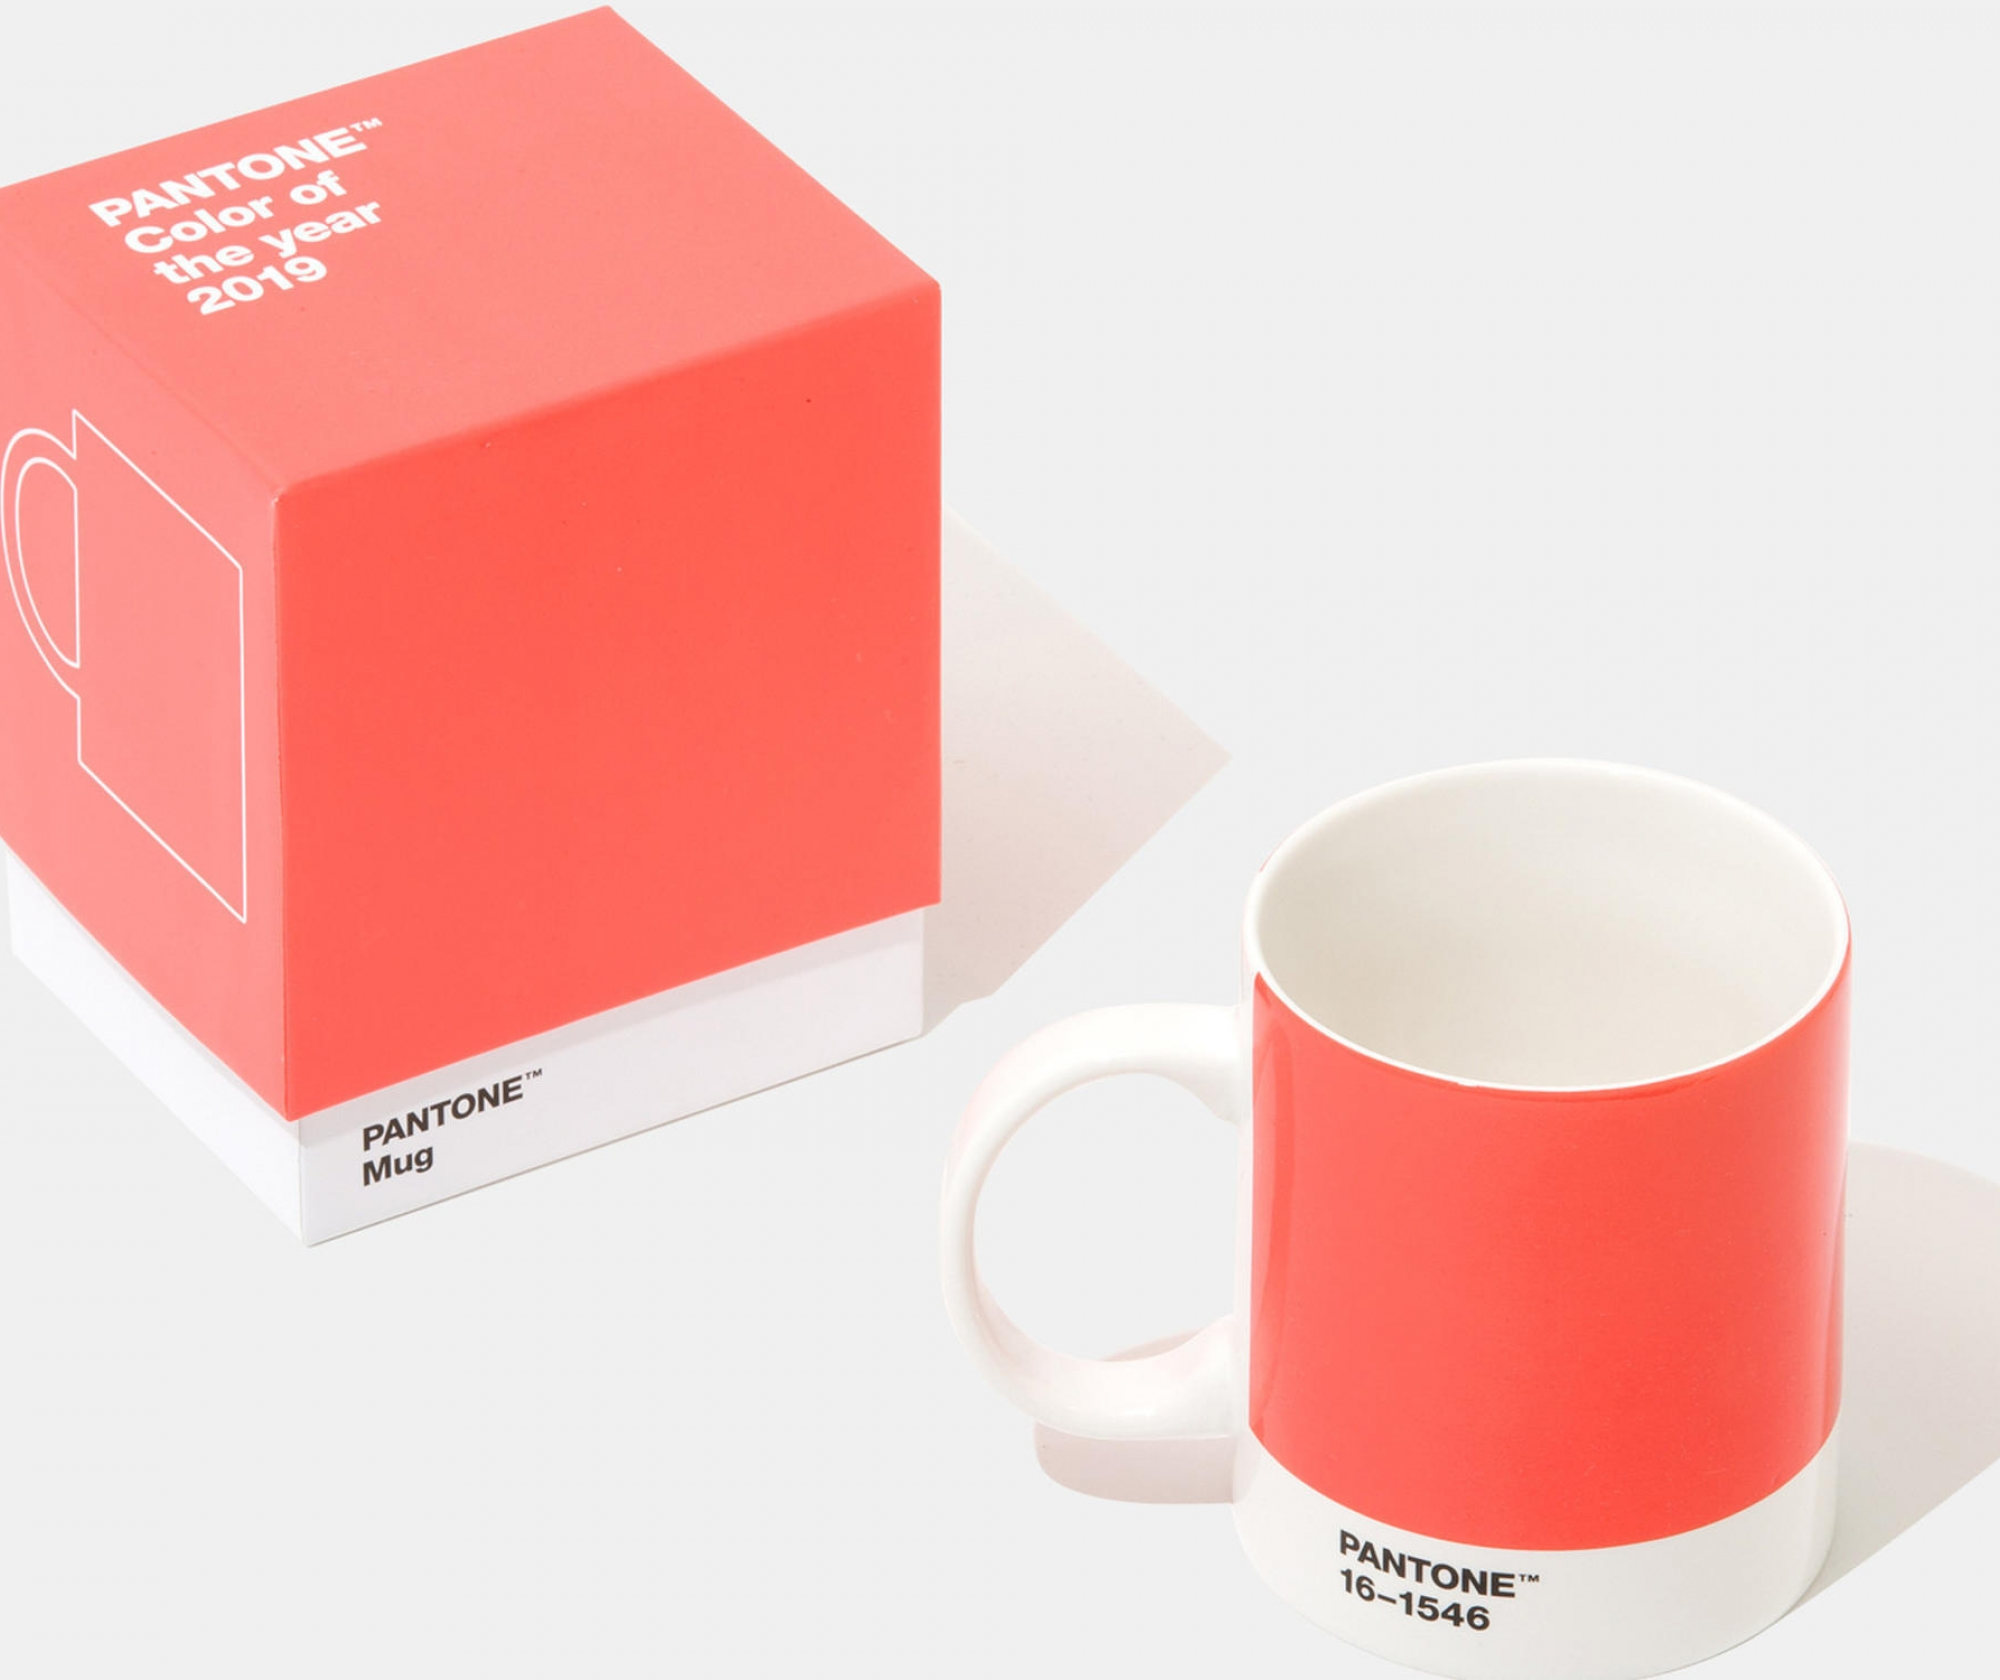 Pantones Color of the Year for 2019 is life-affirming Living Coral